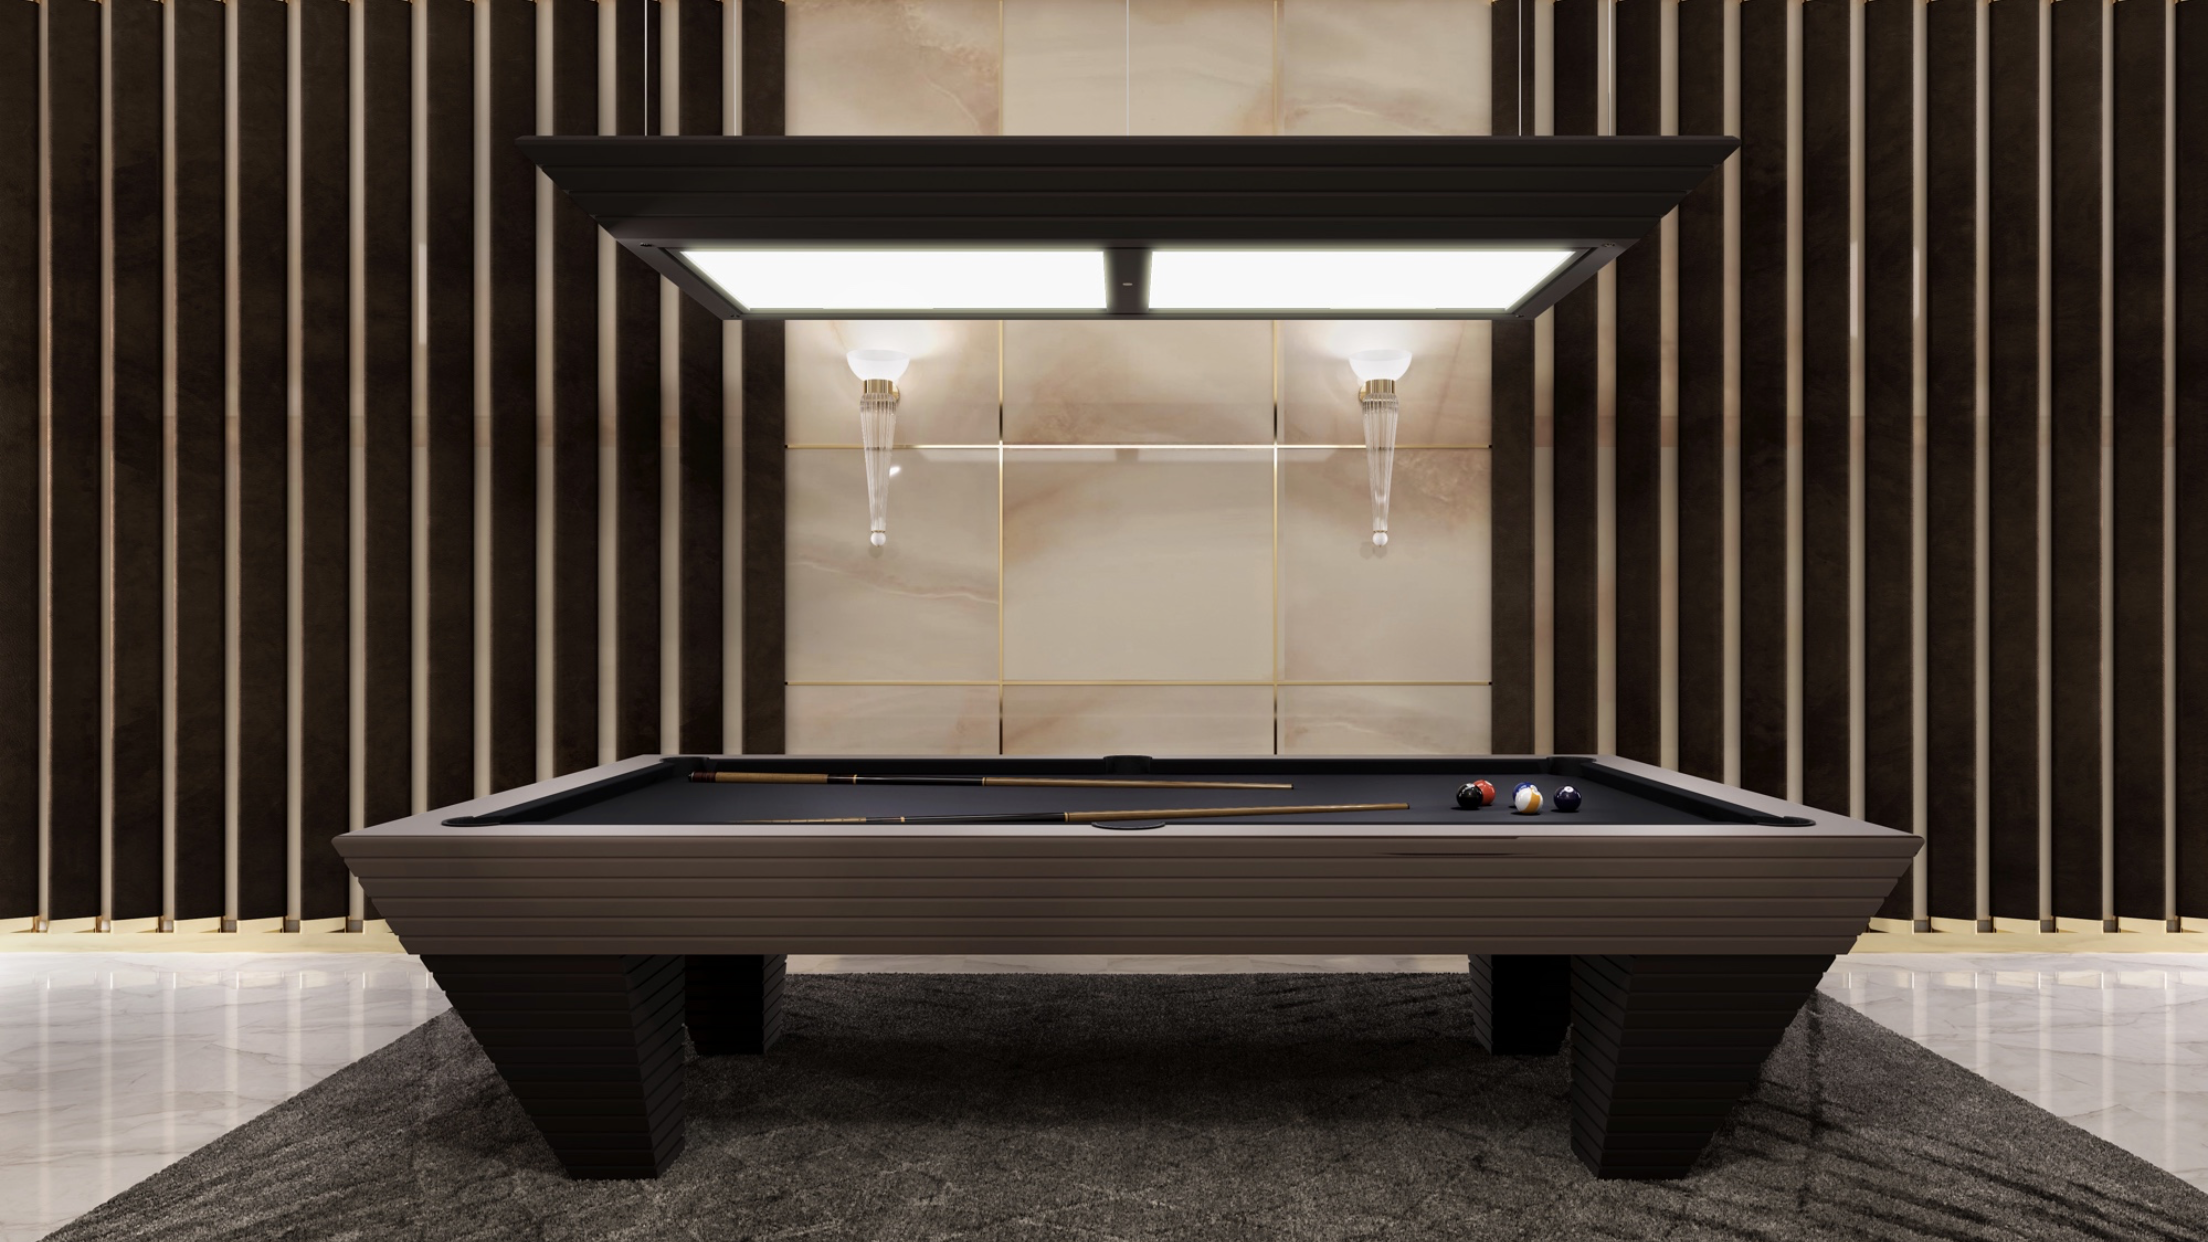 Charming Vismara Design American Pool Table From Luxury Entertainment Collection. A  Masterpiece Of Artisan Skill Linked